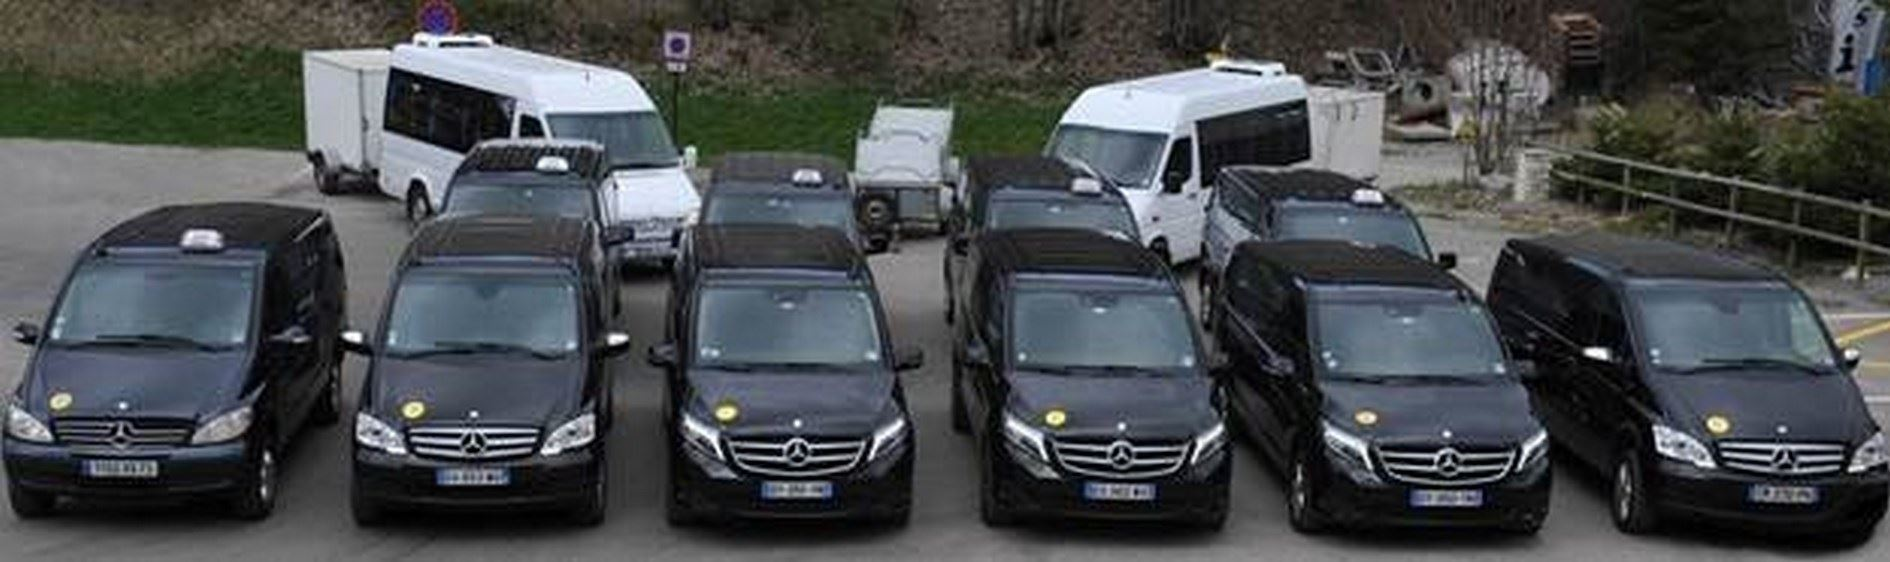 PRIVATE TRANSFER FROM ANNECY AIRPORT - ALPES TAXIS TRANSPORTS